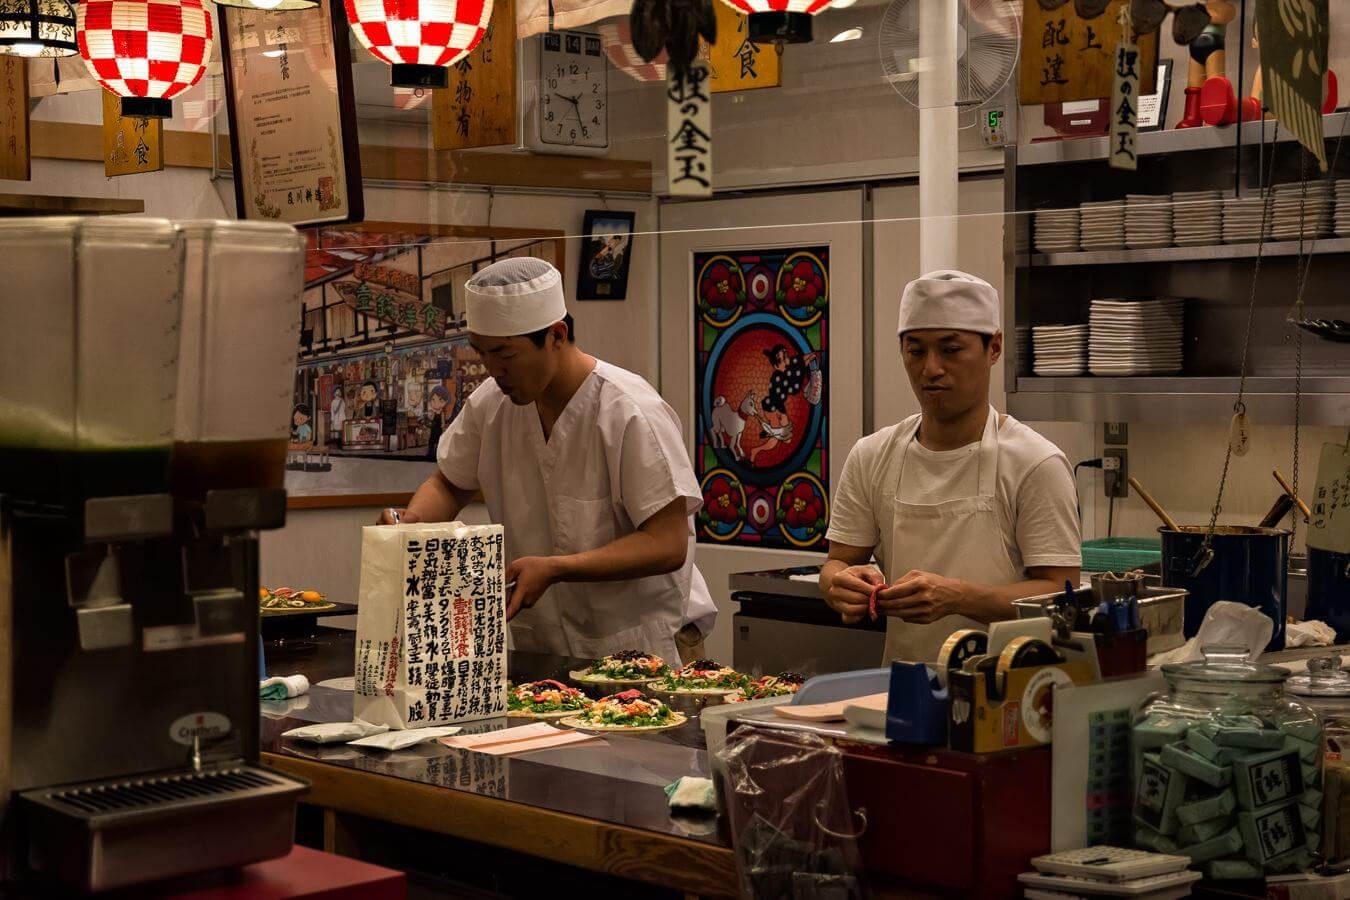 Restaurant in Tokyo, Japan - Photo by Zed Sindelar of CuriousZed Photography